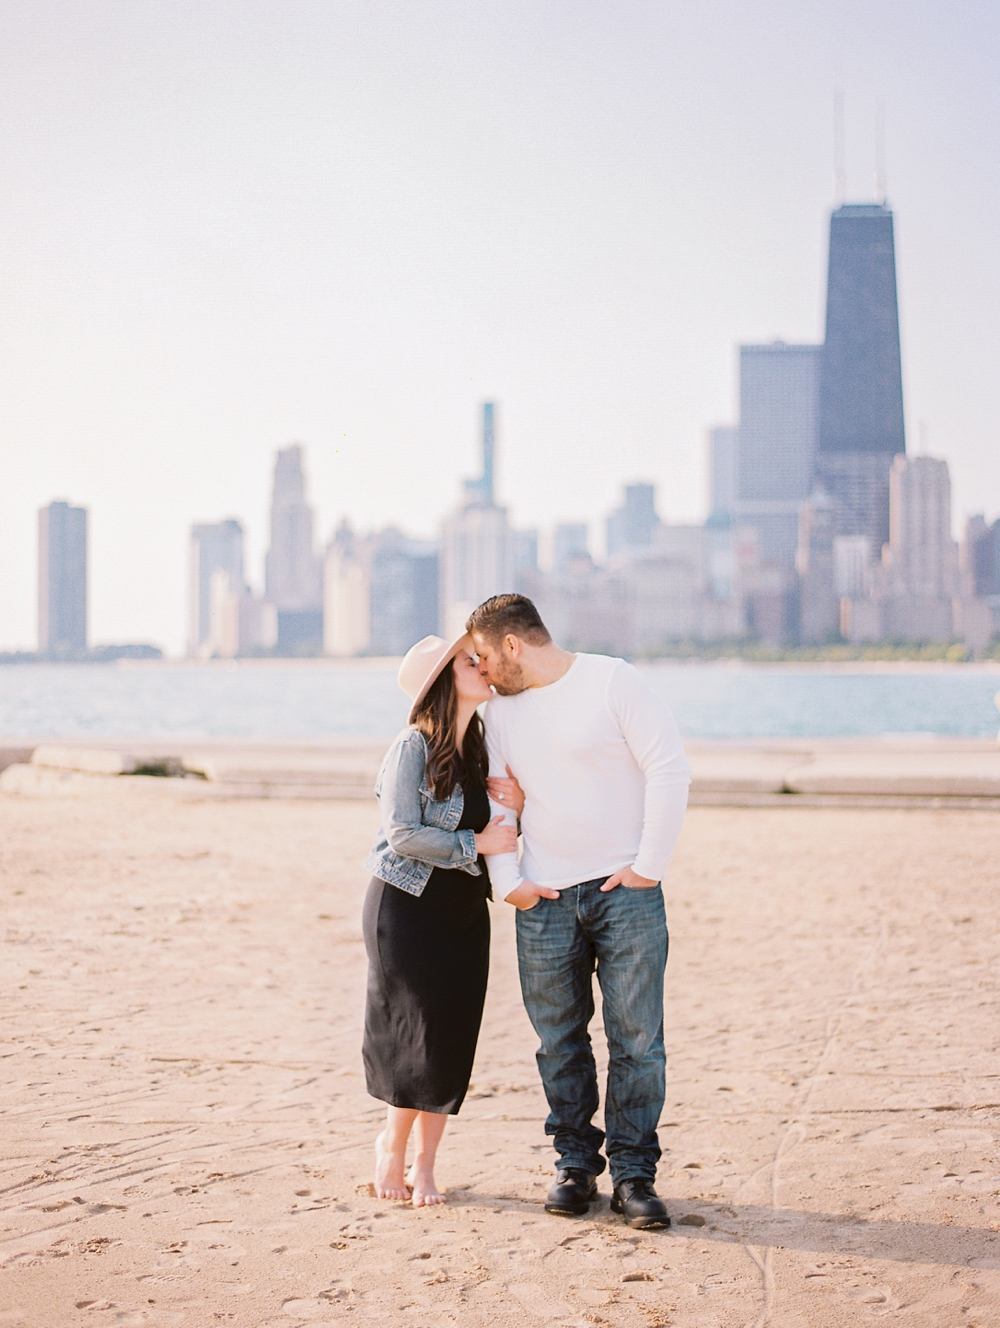 Kristin-La-Voie-Photography-CHICAGO-WEDDING-PHOTOGRAPHER-29